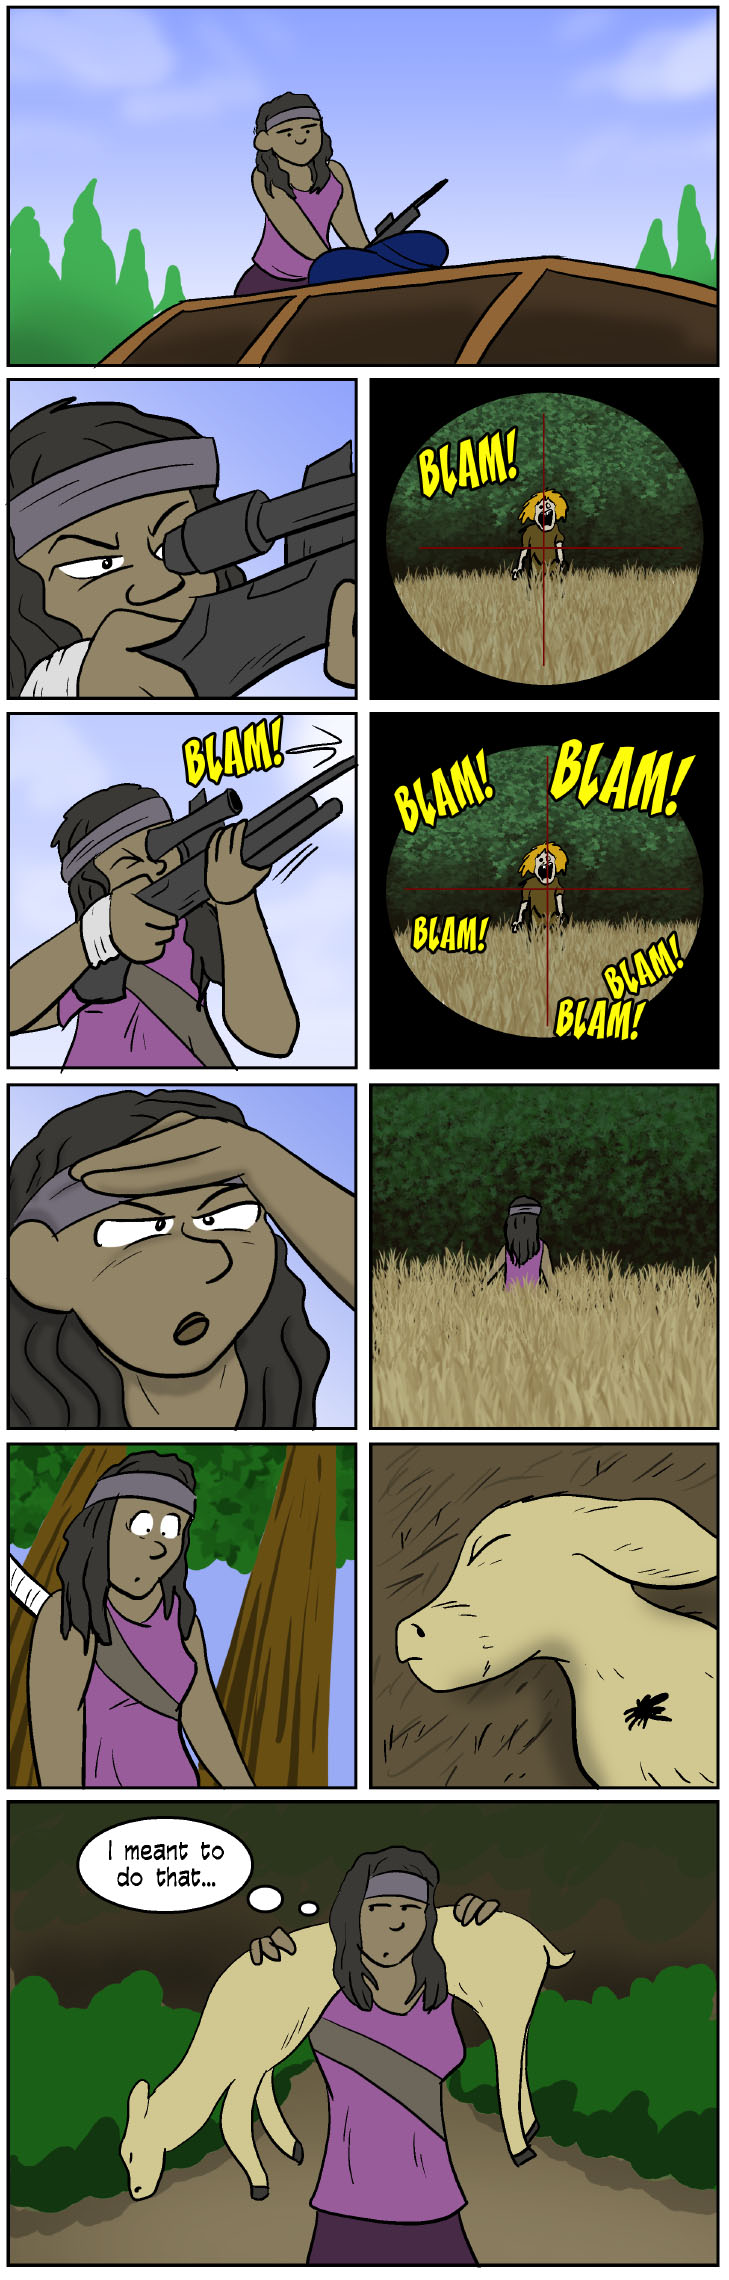 walkingdead3 - Target Practice With Michonne